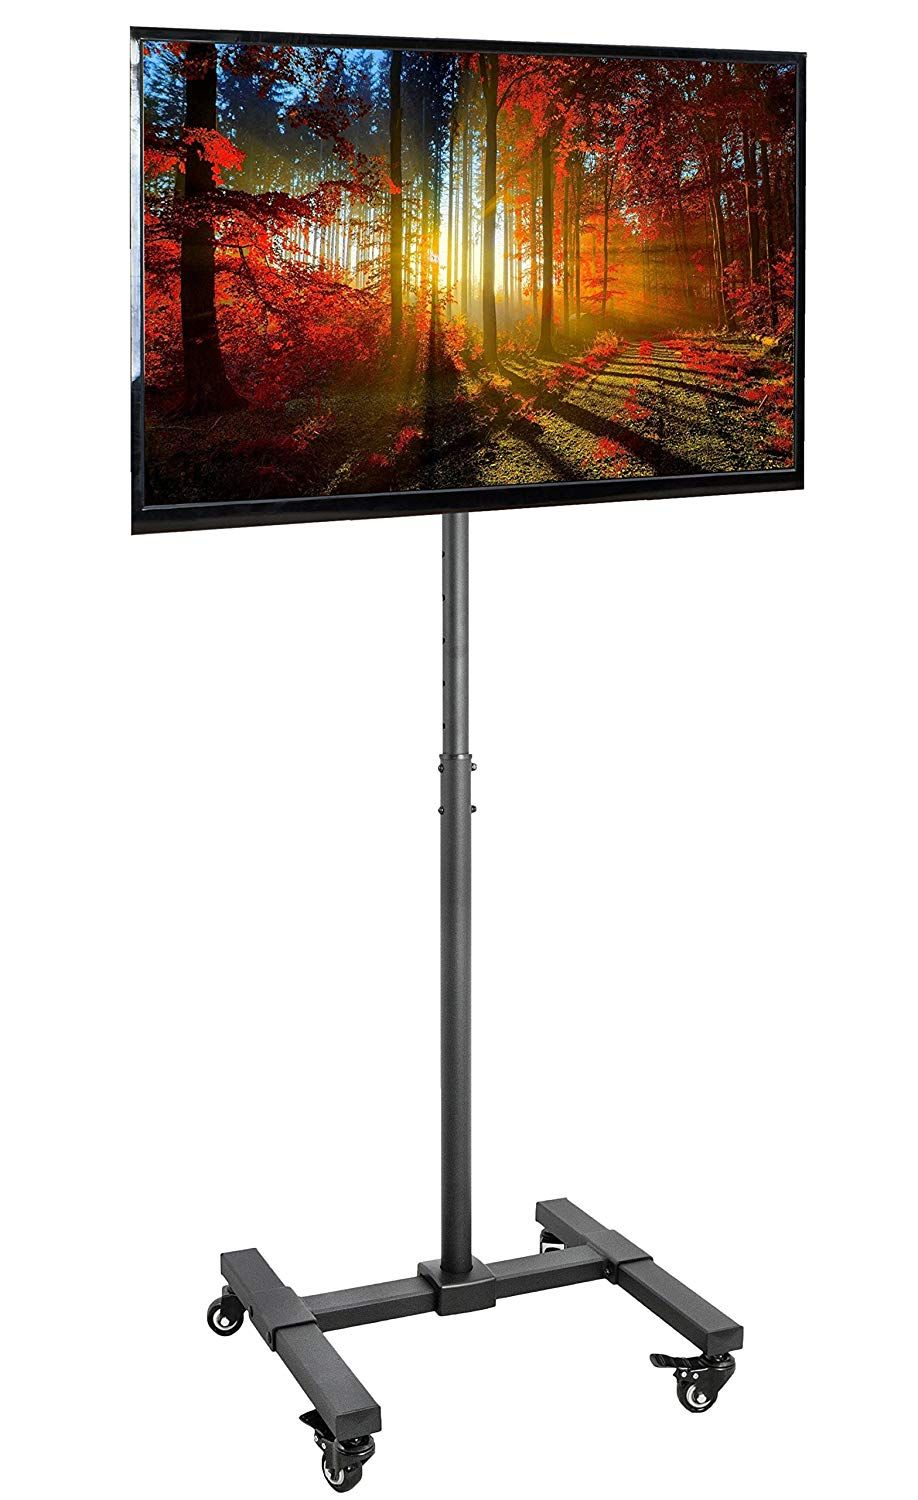 Vivo Mobile Tv Display Floor Stand Height Adjustable Mount W Wheels For Flat Panel Led Lcd Plasma Screen 13 To 42 Portable Tv Stand Tv Display Tv Floor Stand